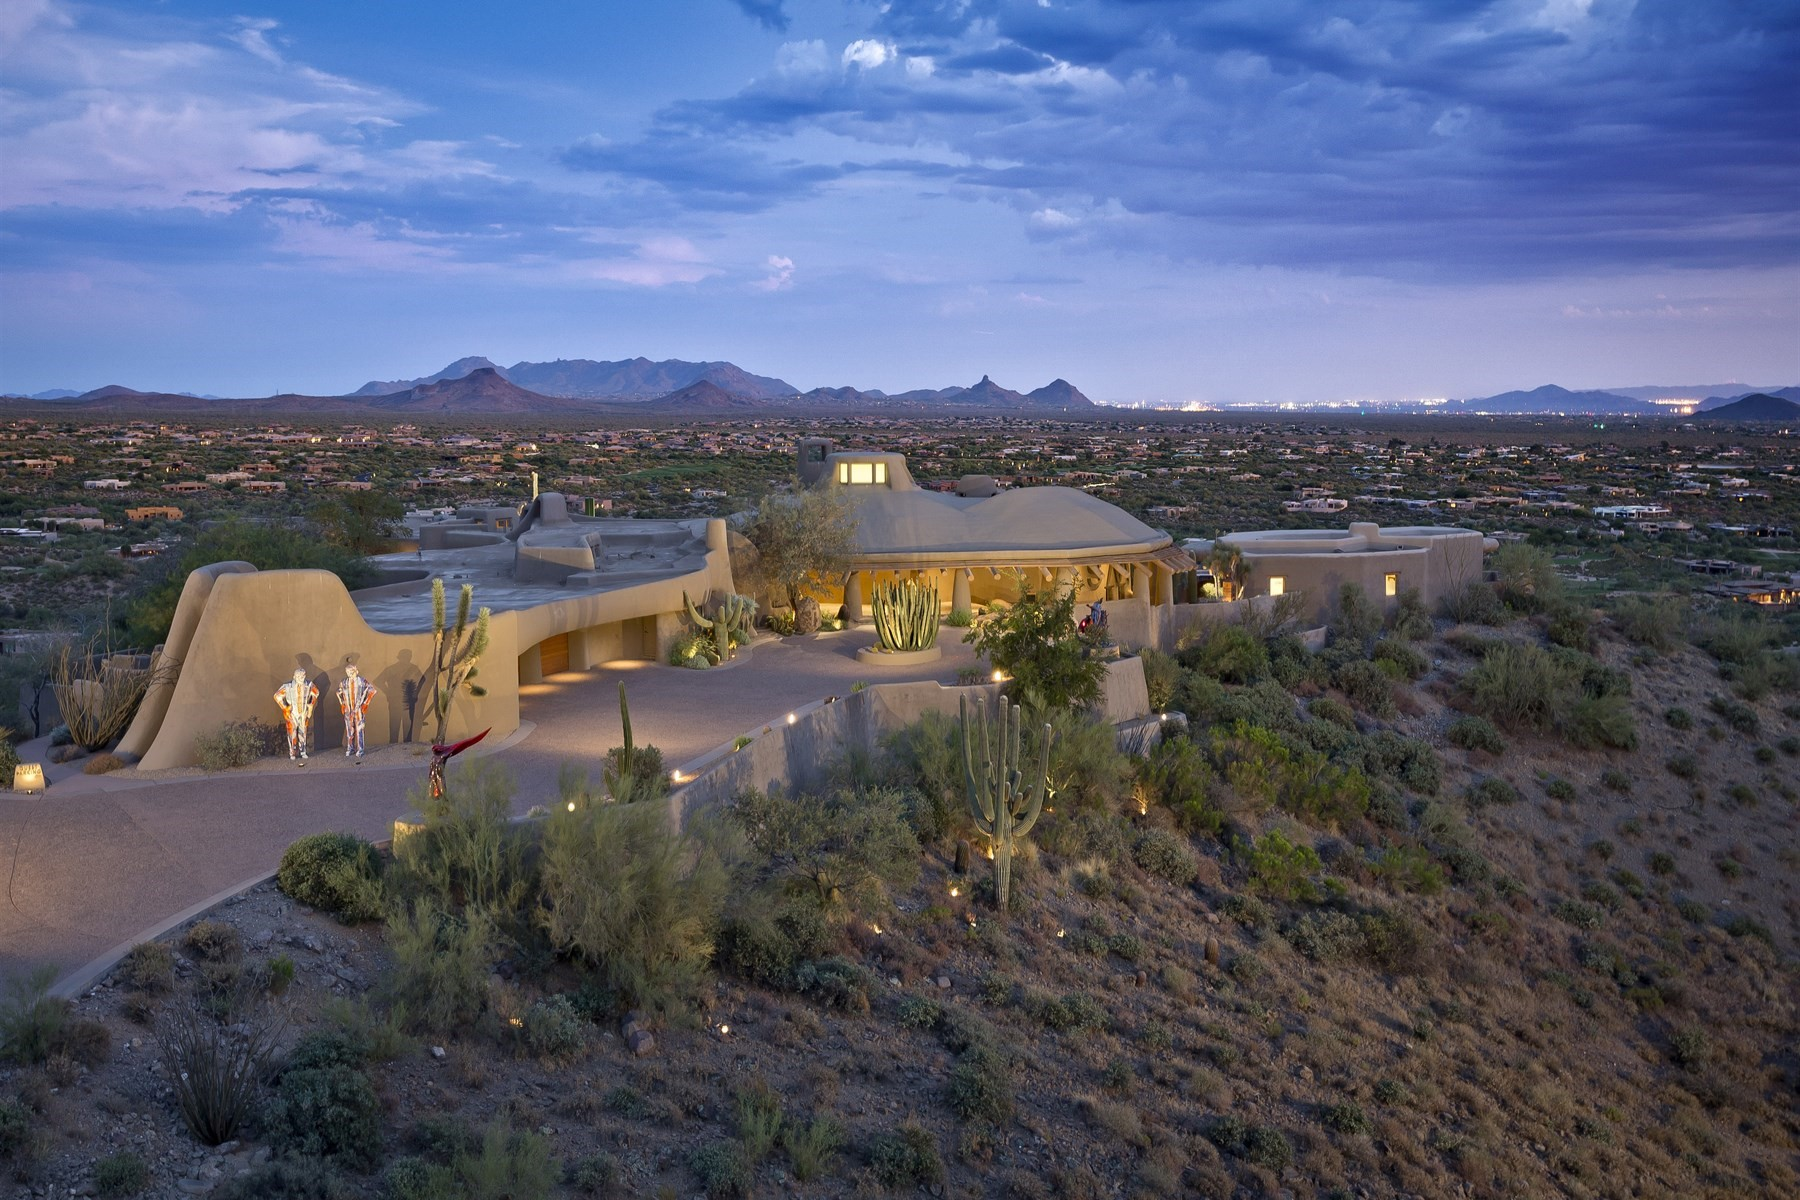 Moradia para Venda às One-of-a-kind 15-acre estate that towers over the valley 39029 N Alister McKenzie Dr, Scottsdale, Arizona, 85262 Estados Unidos